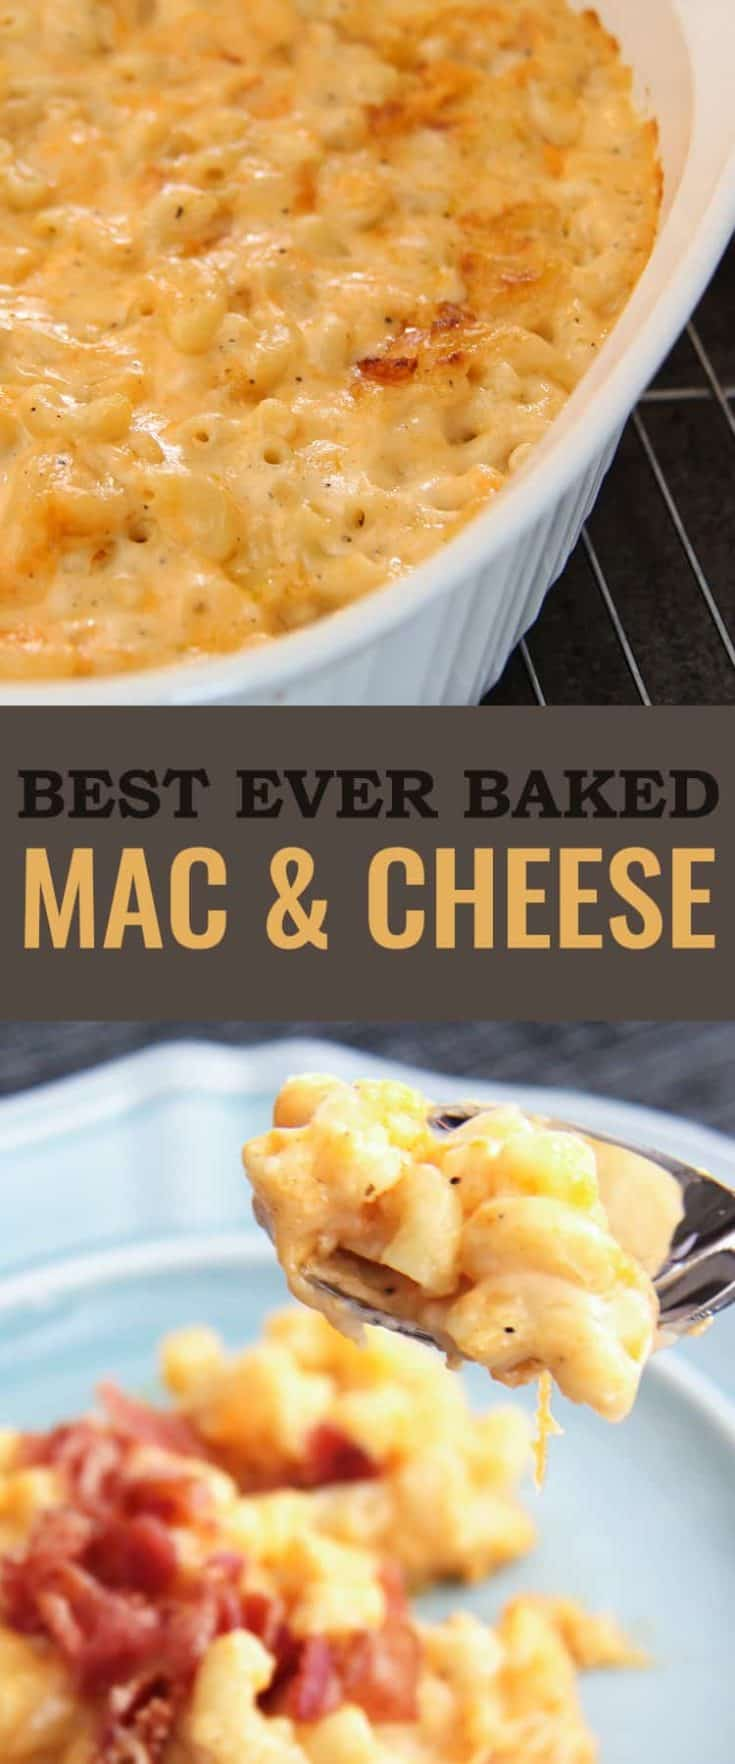 The Best Macaroni and Cheese - ever. Cheesy, gooey, full of flavour and with that crusted topping of cheese that we love from a casserole. #macandcheese #bakesmacandcheese #easyrecipe